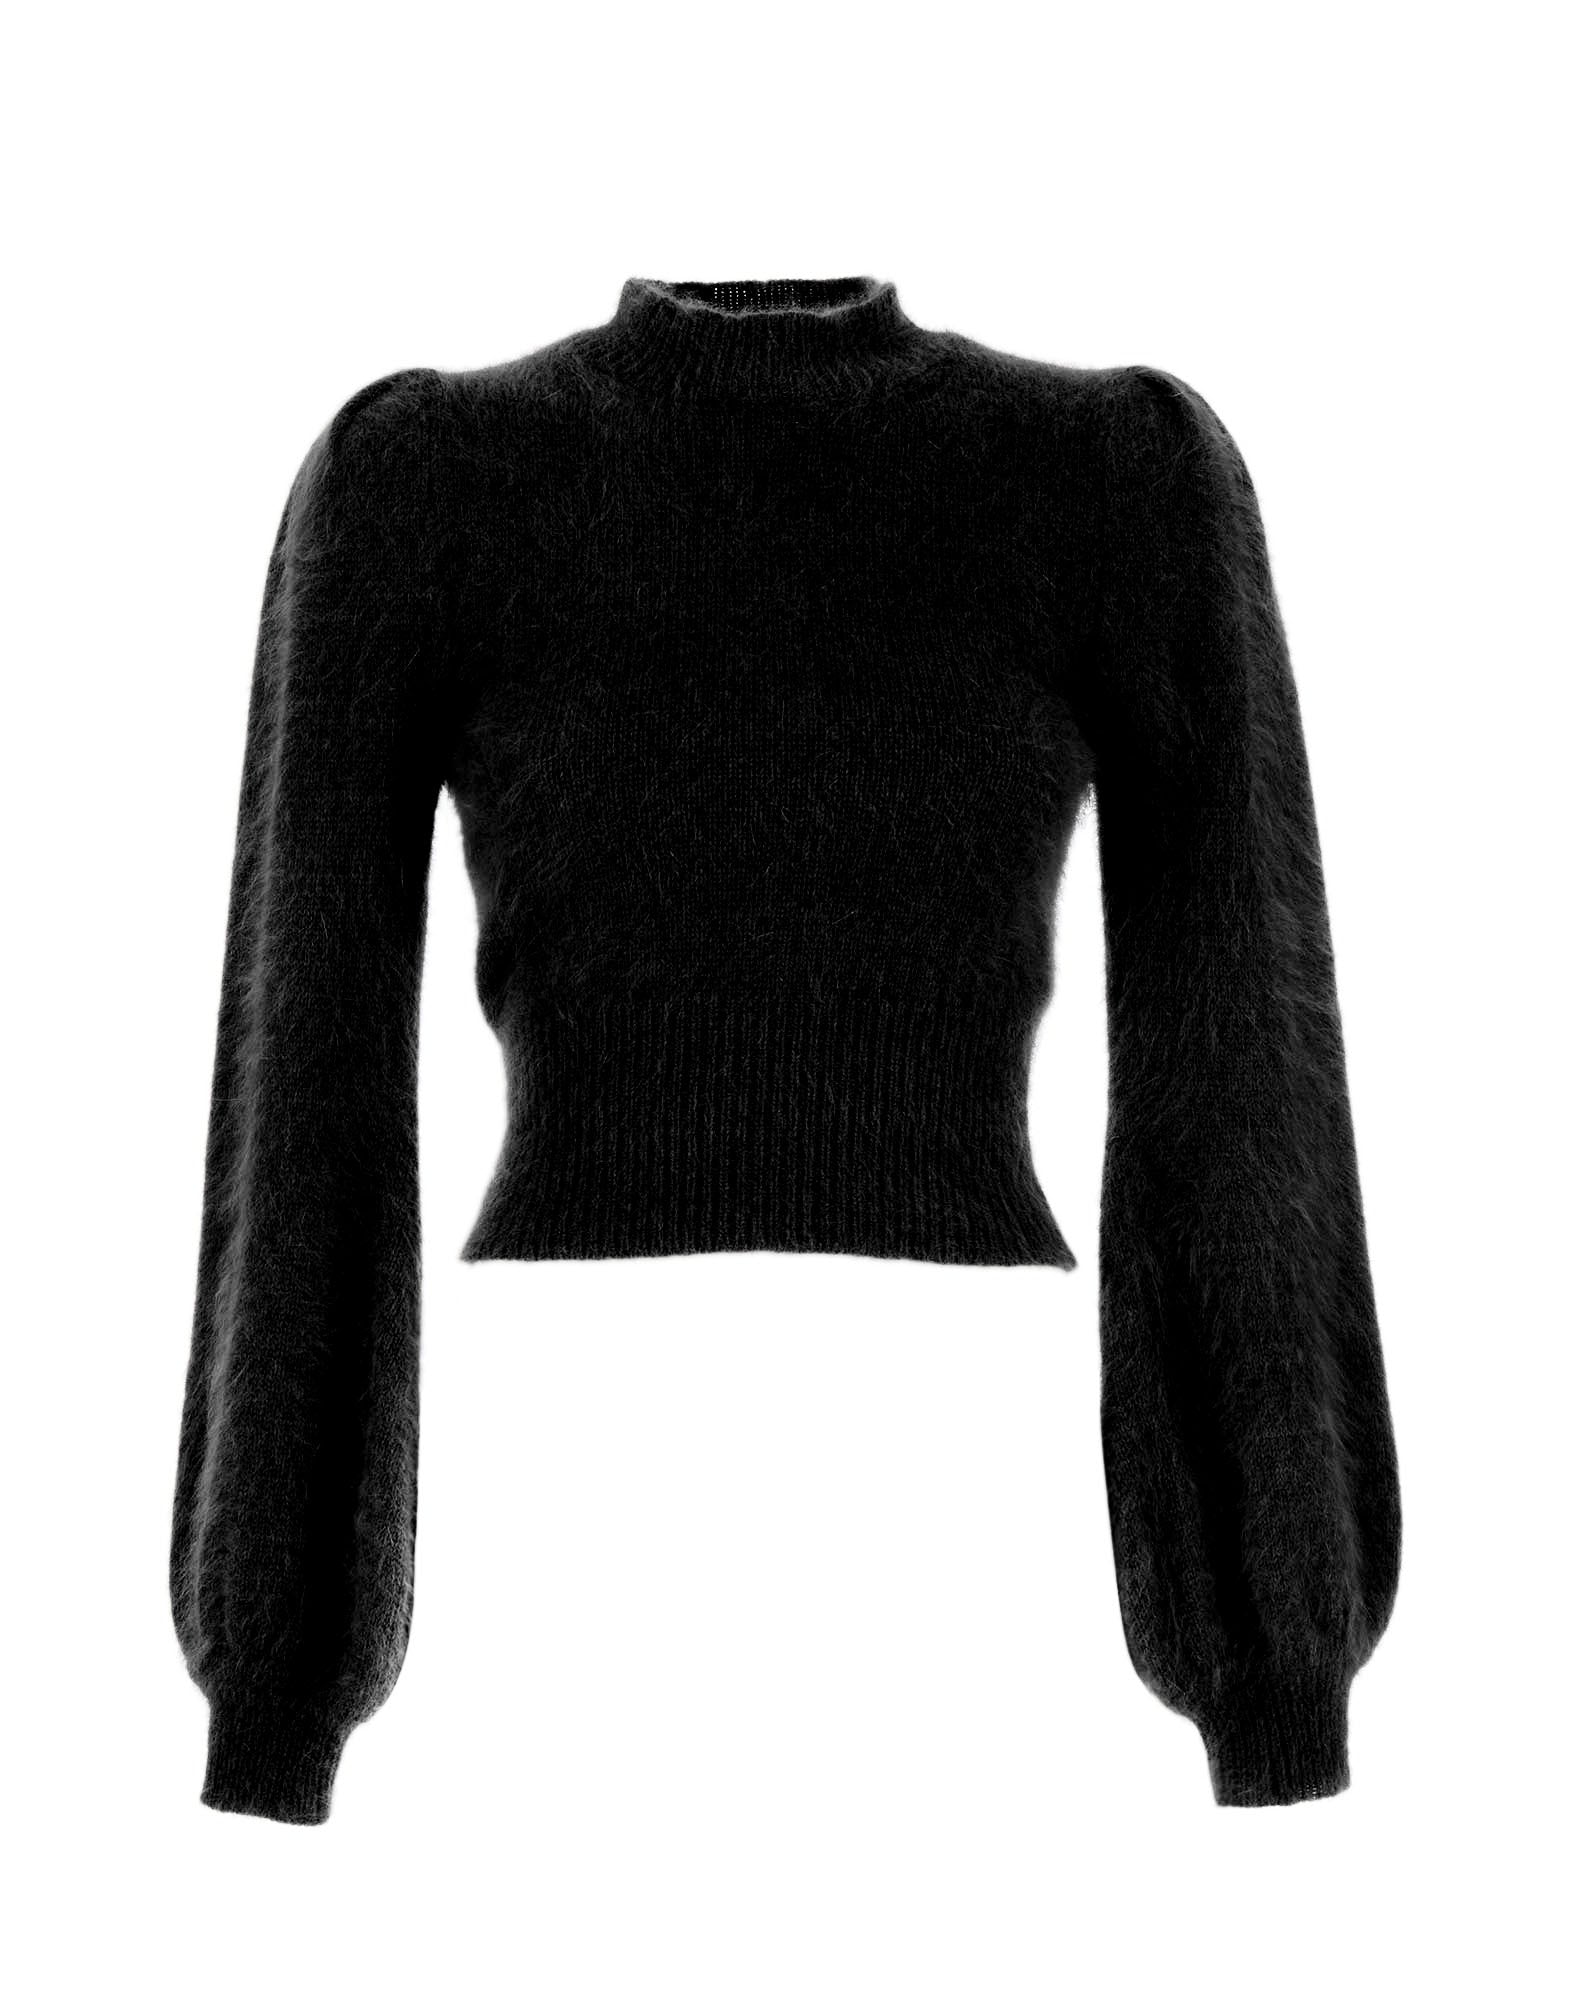 Black turtleneck angora knit - NEW IN